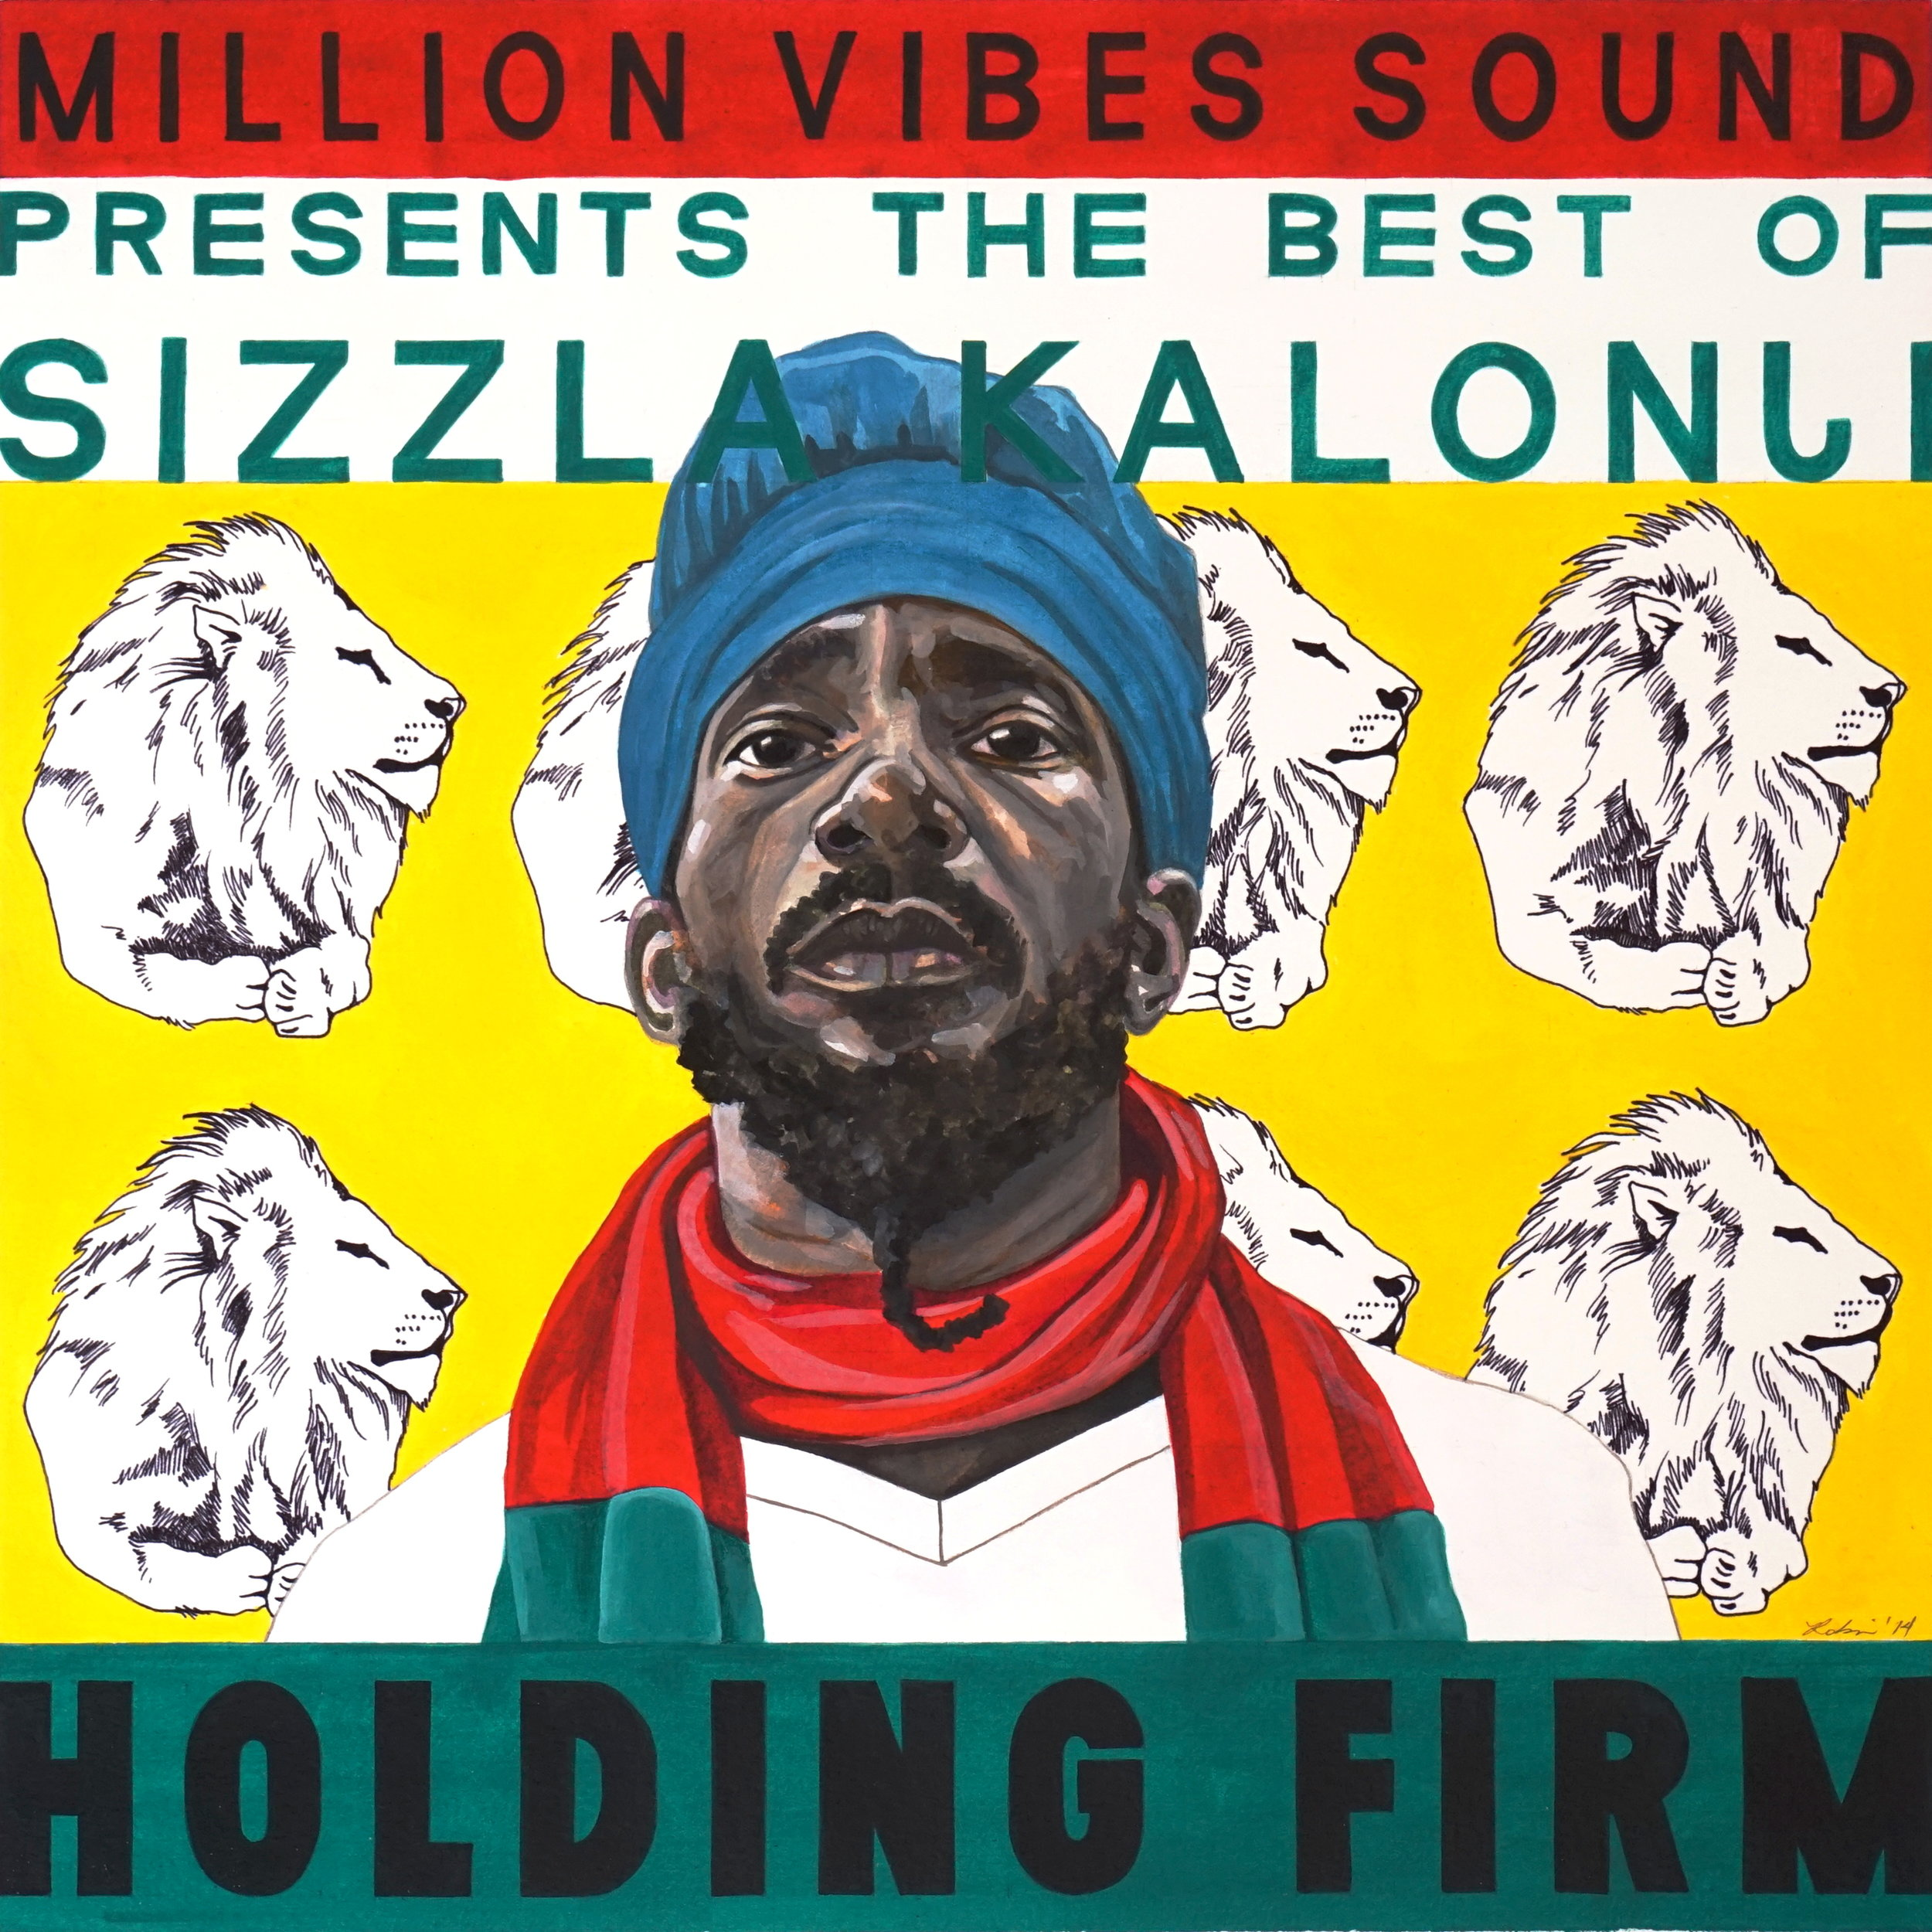 Million Vibes Sound - Holding Firm (mixtape)